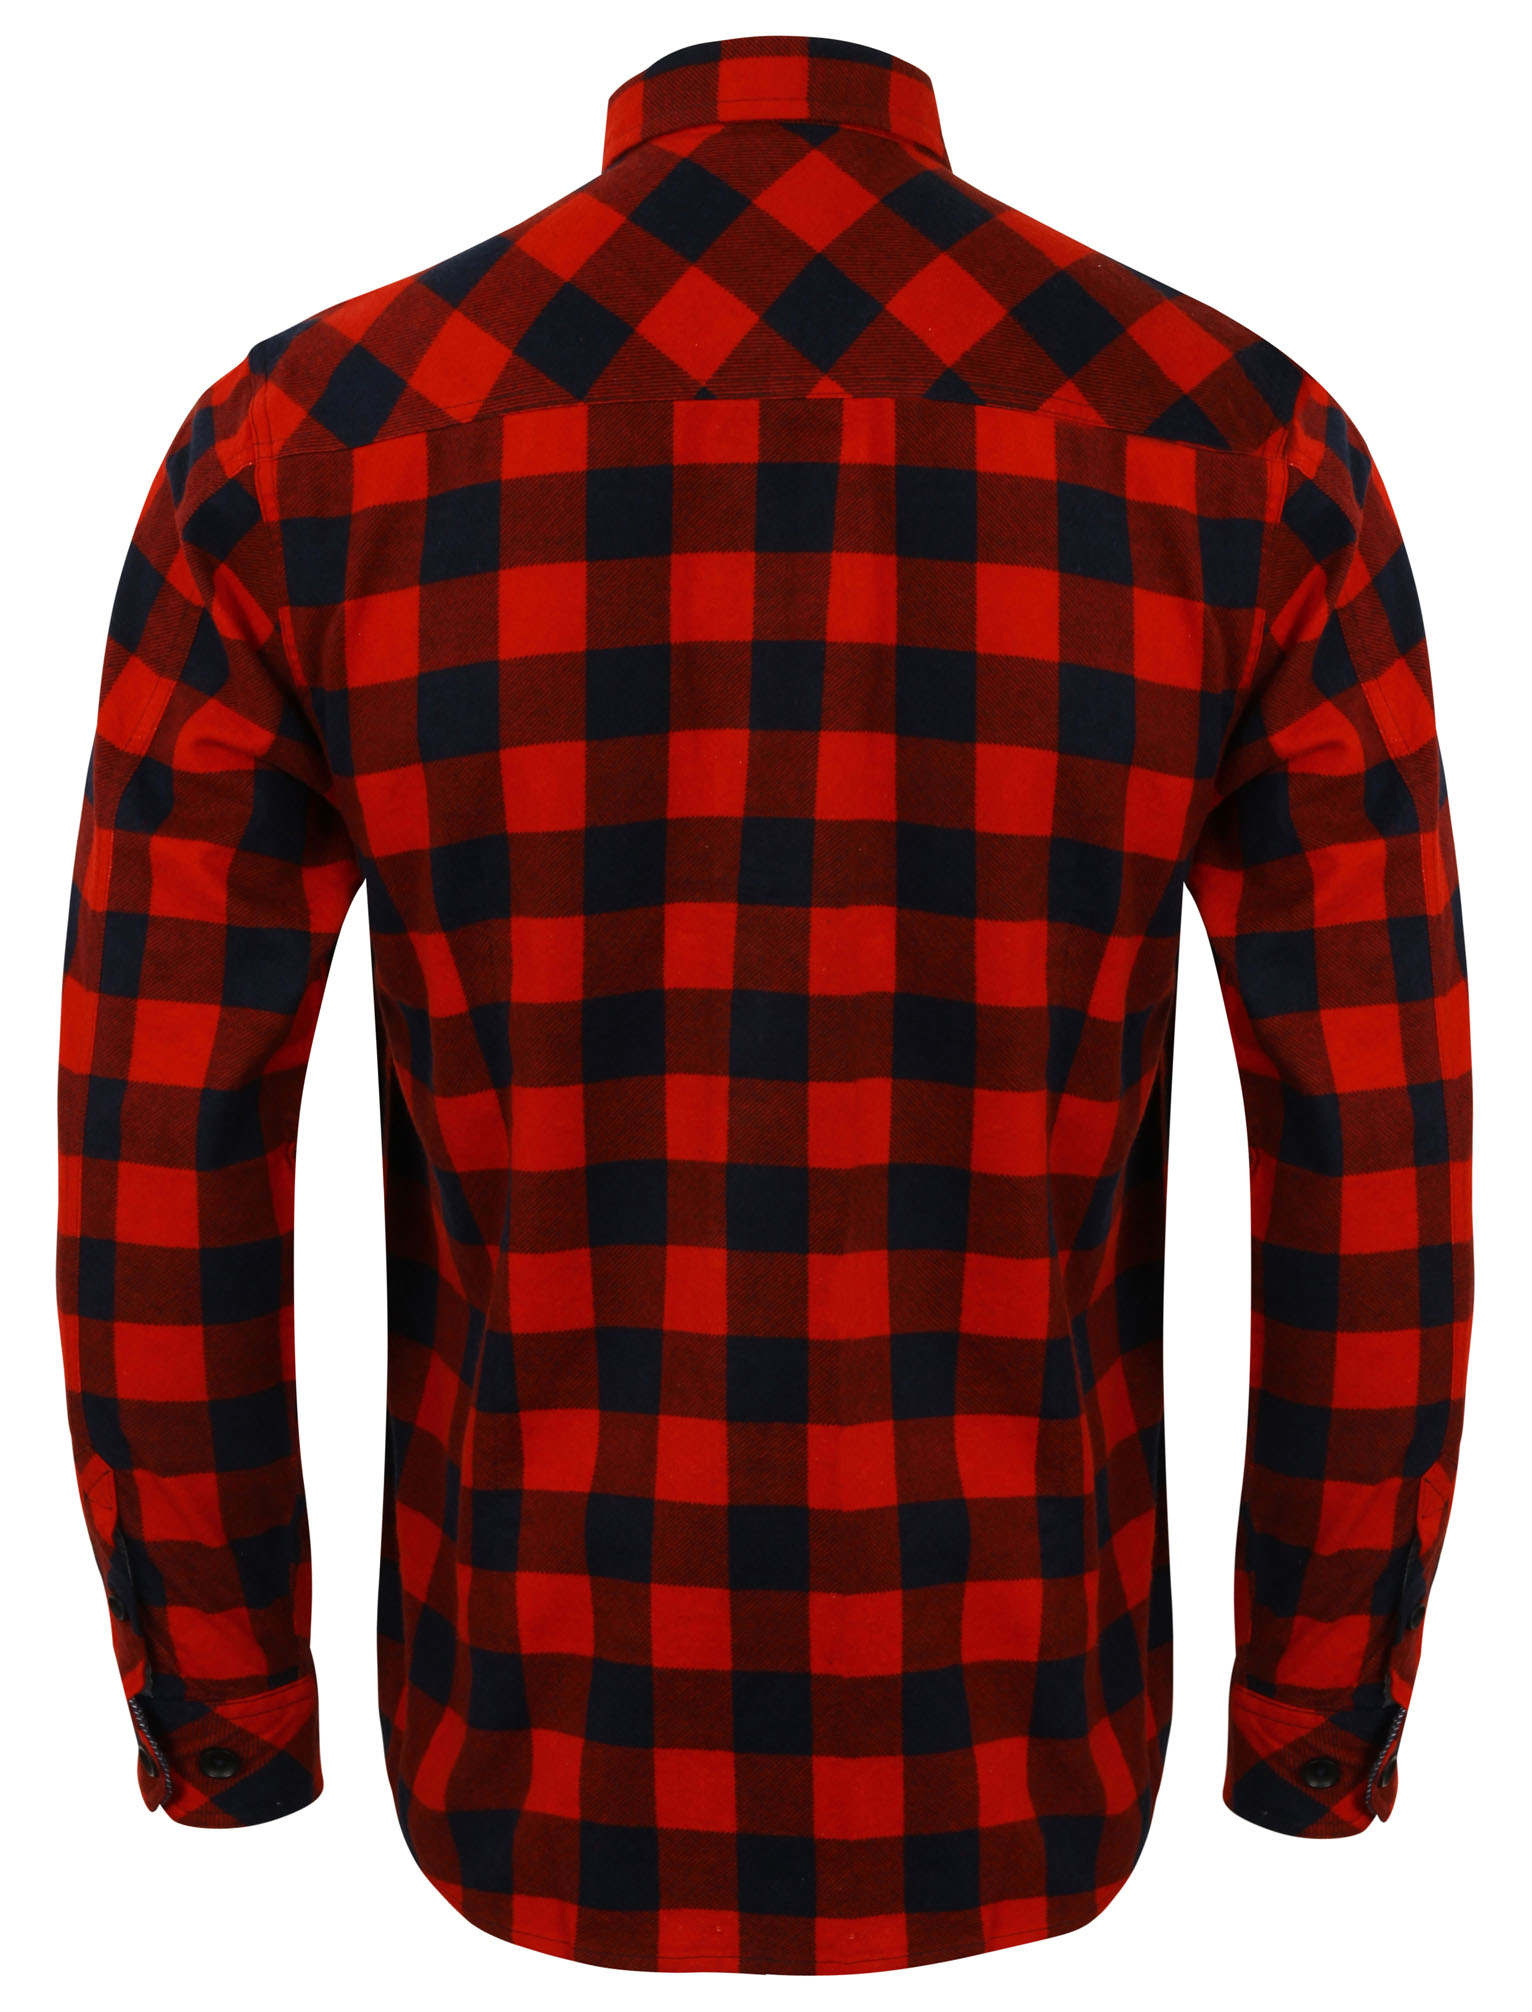 New-Mens-Tokyo-Laundry-Cotton-Long-Sleeve-Checked-Flannel-Shirt-Size-S-XL thumbnail 3